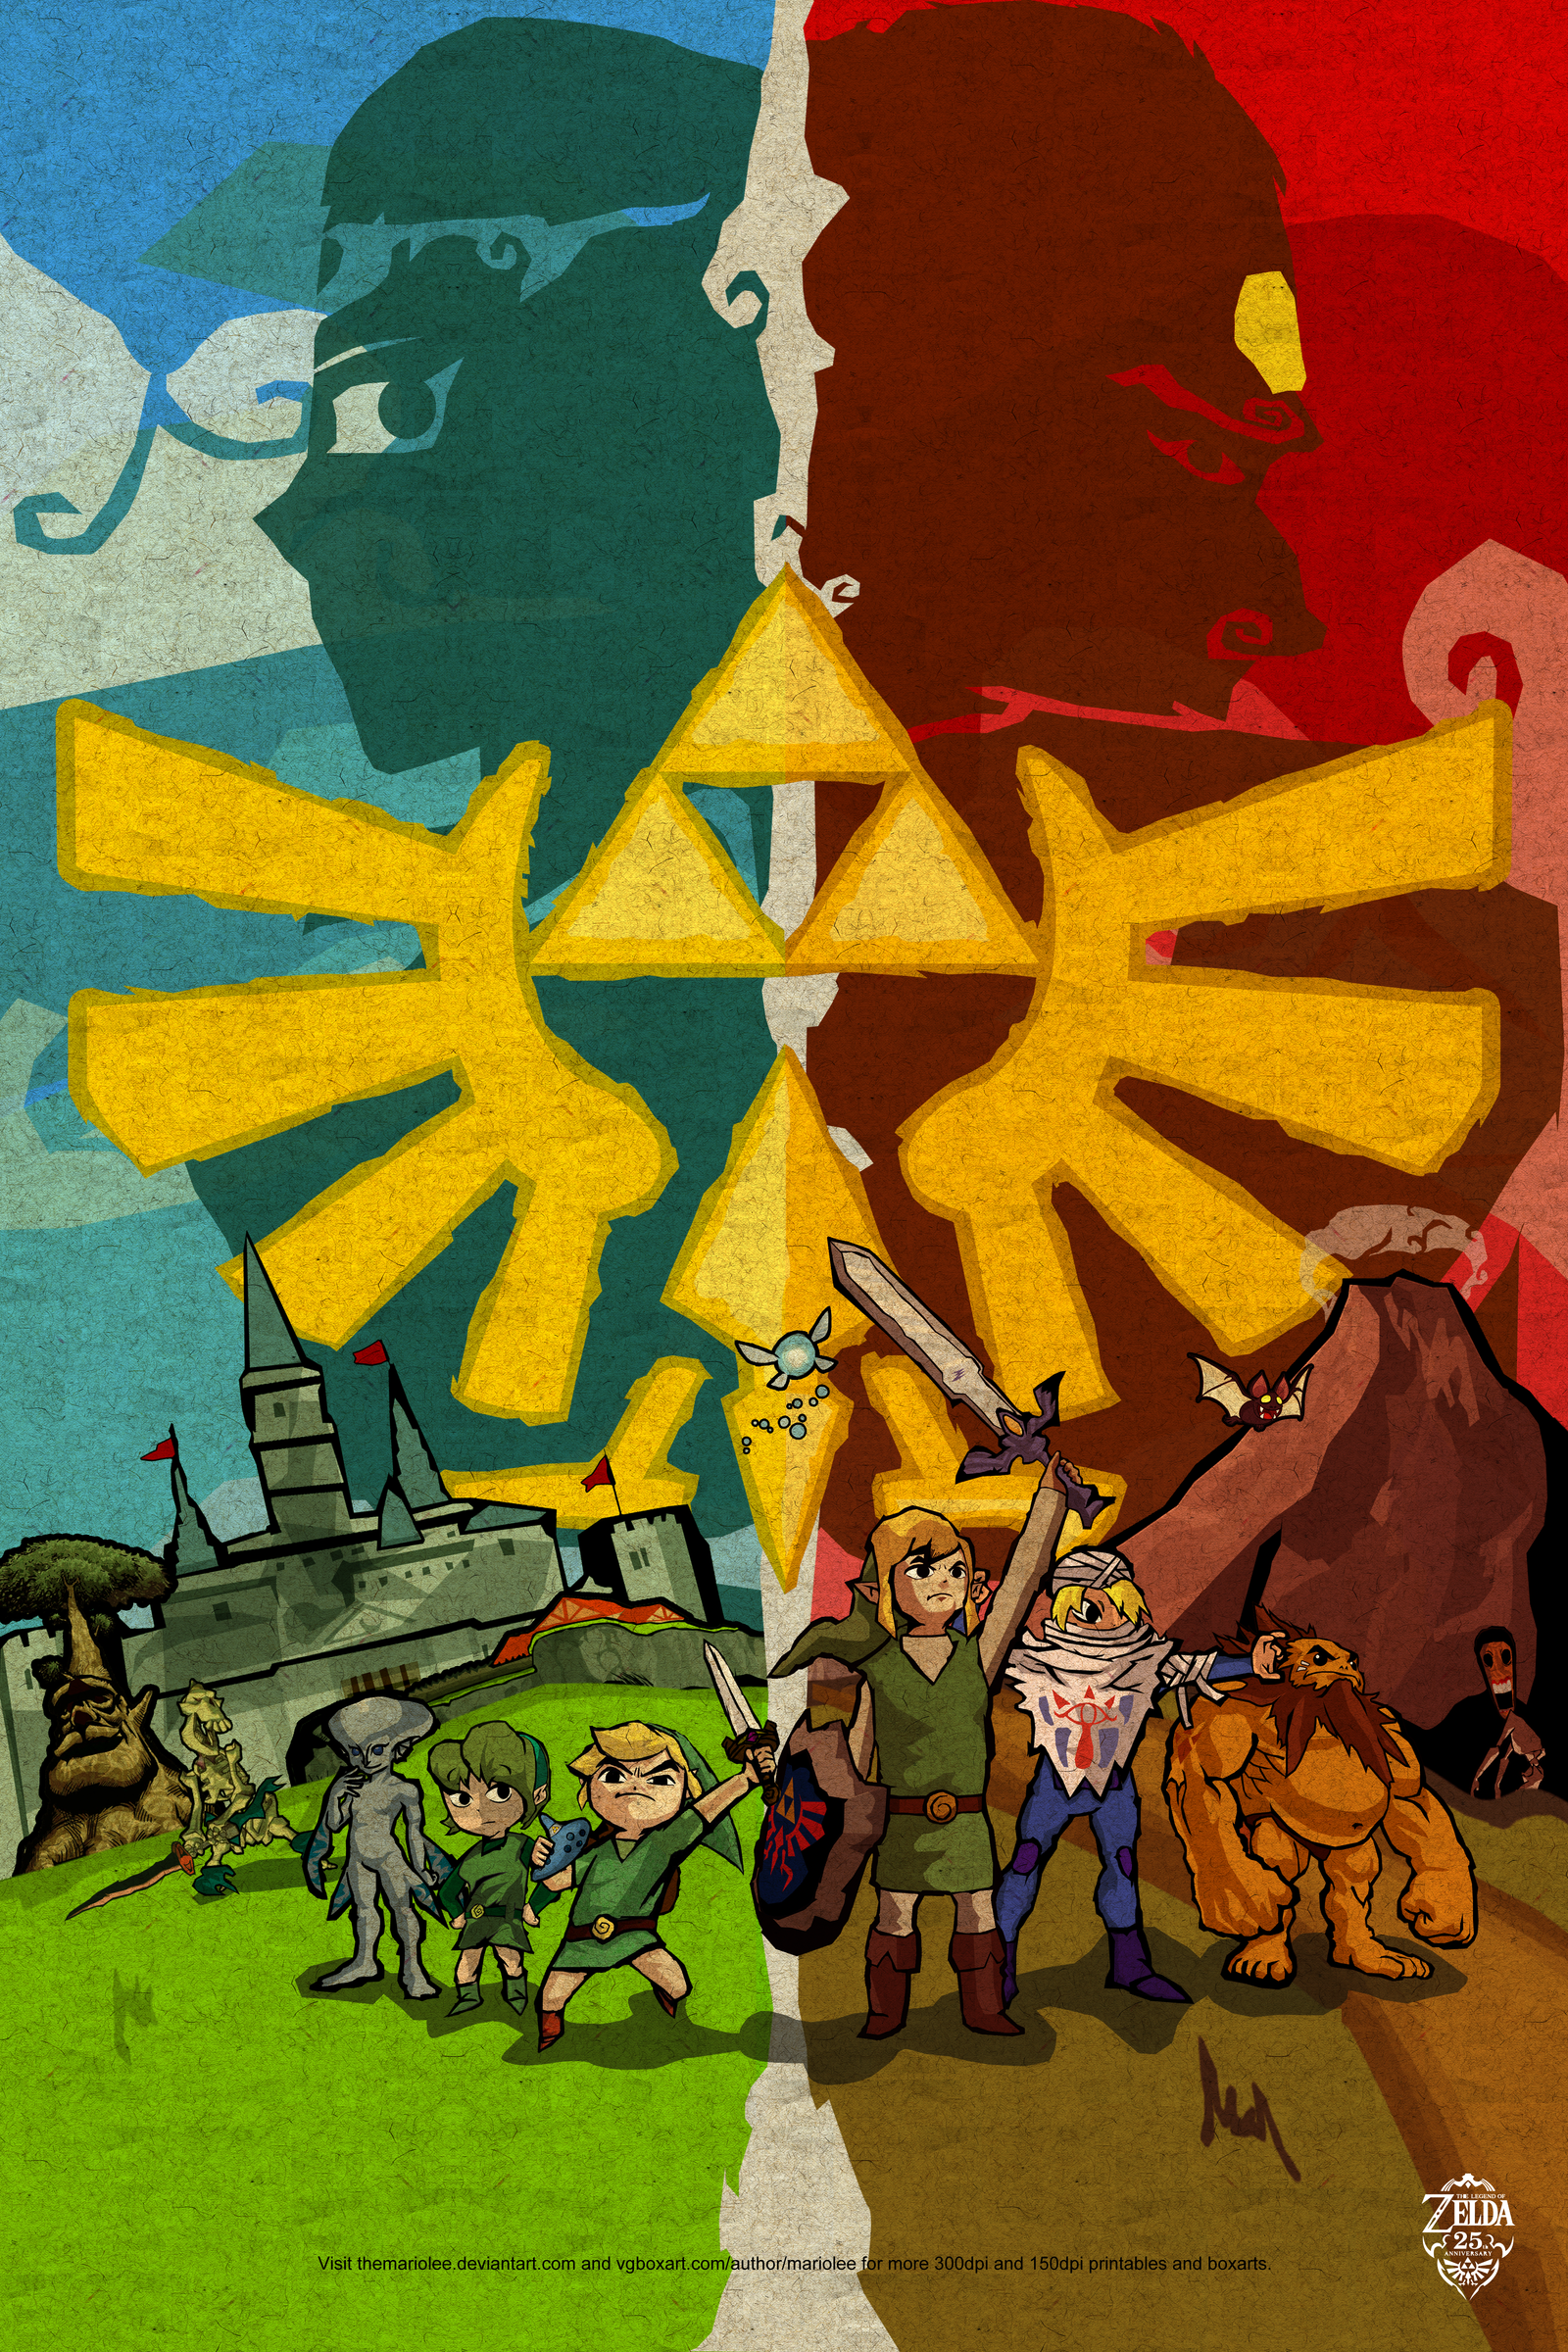 http://img03.deviantart.net/95e4/i/2012/007/f/7/ocarina_of_time_stylized_poster_by_themariolee-d4kigz2.png